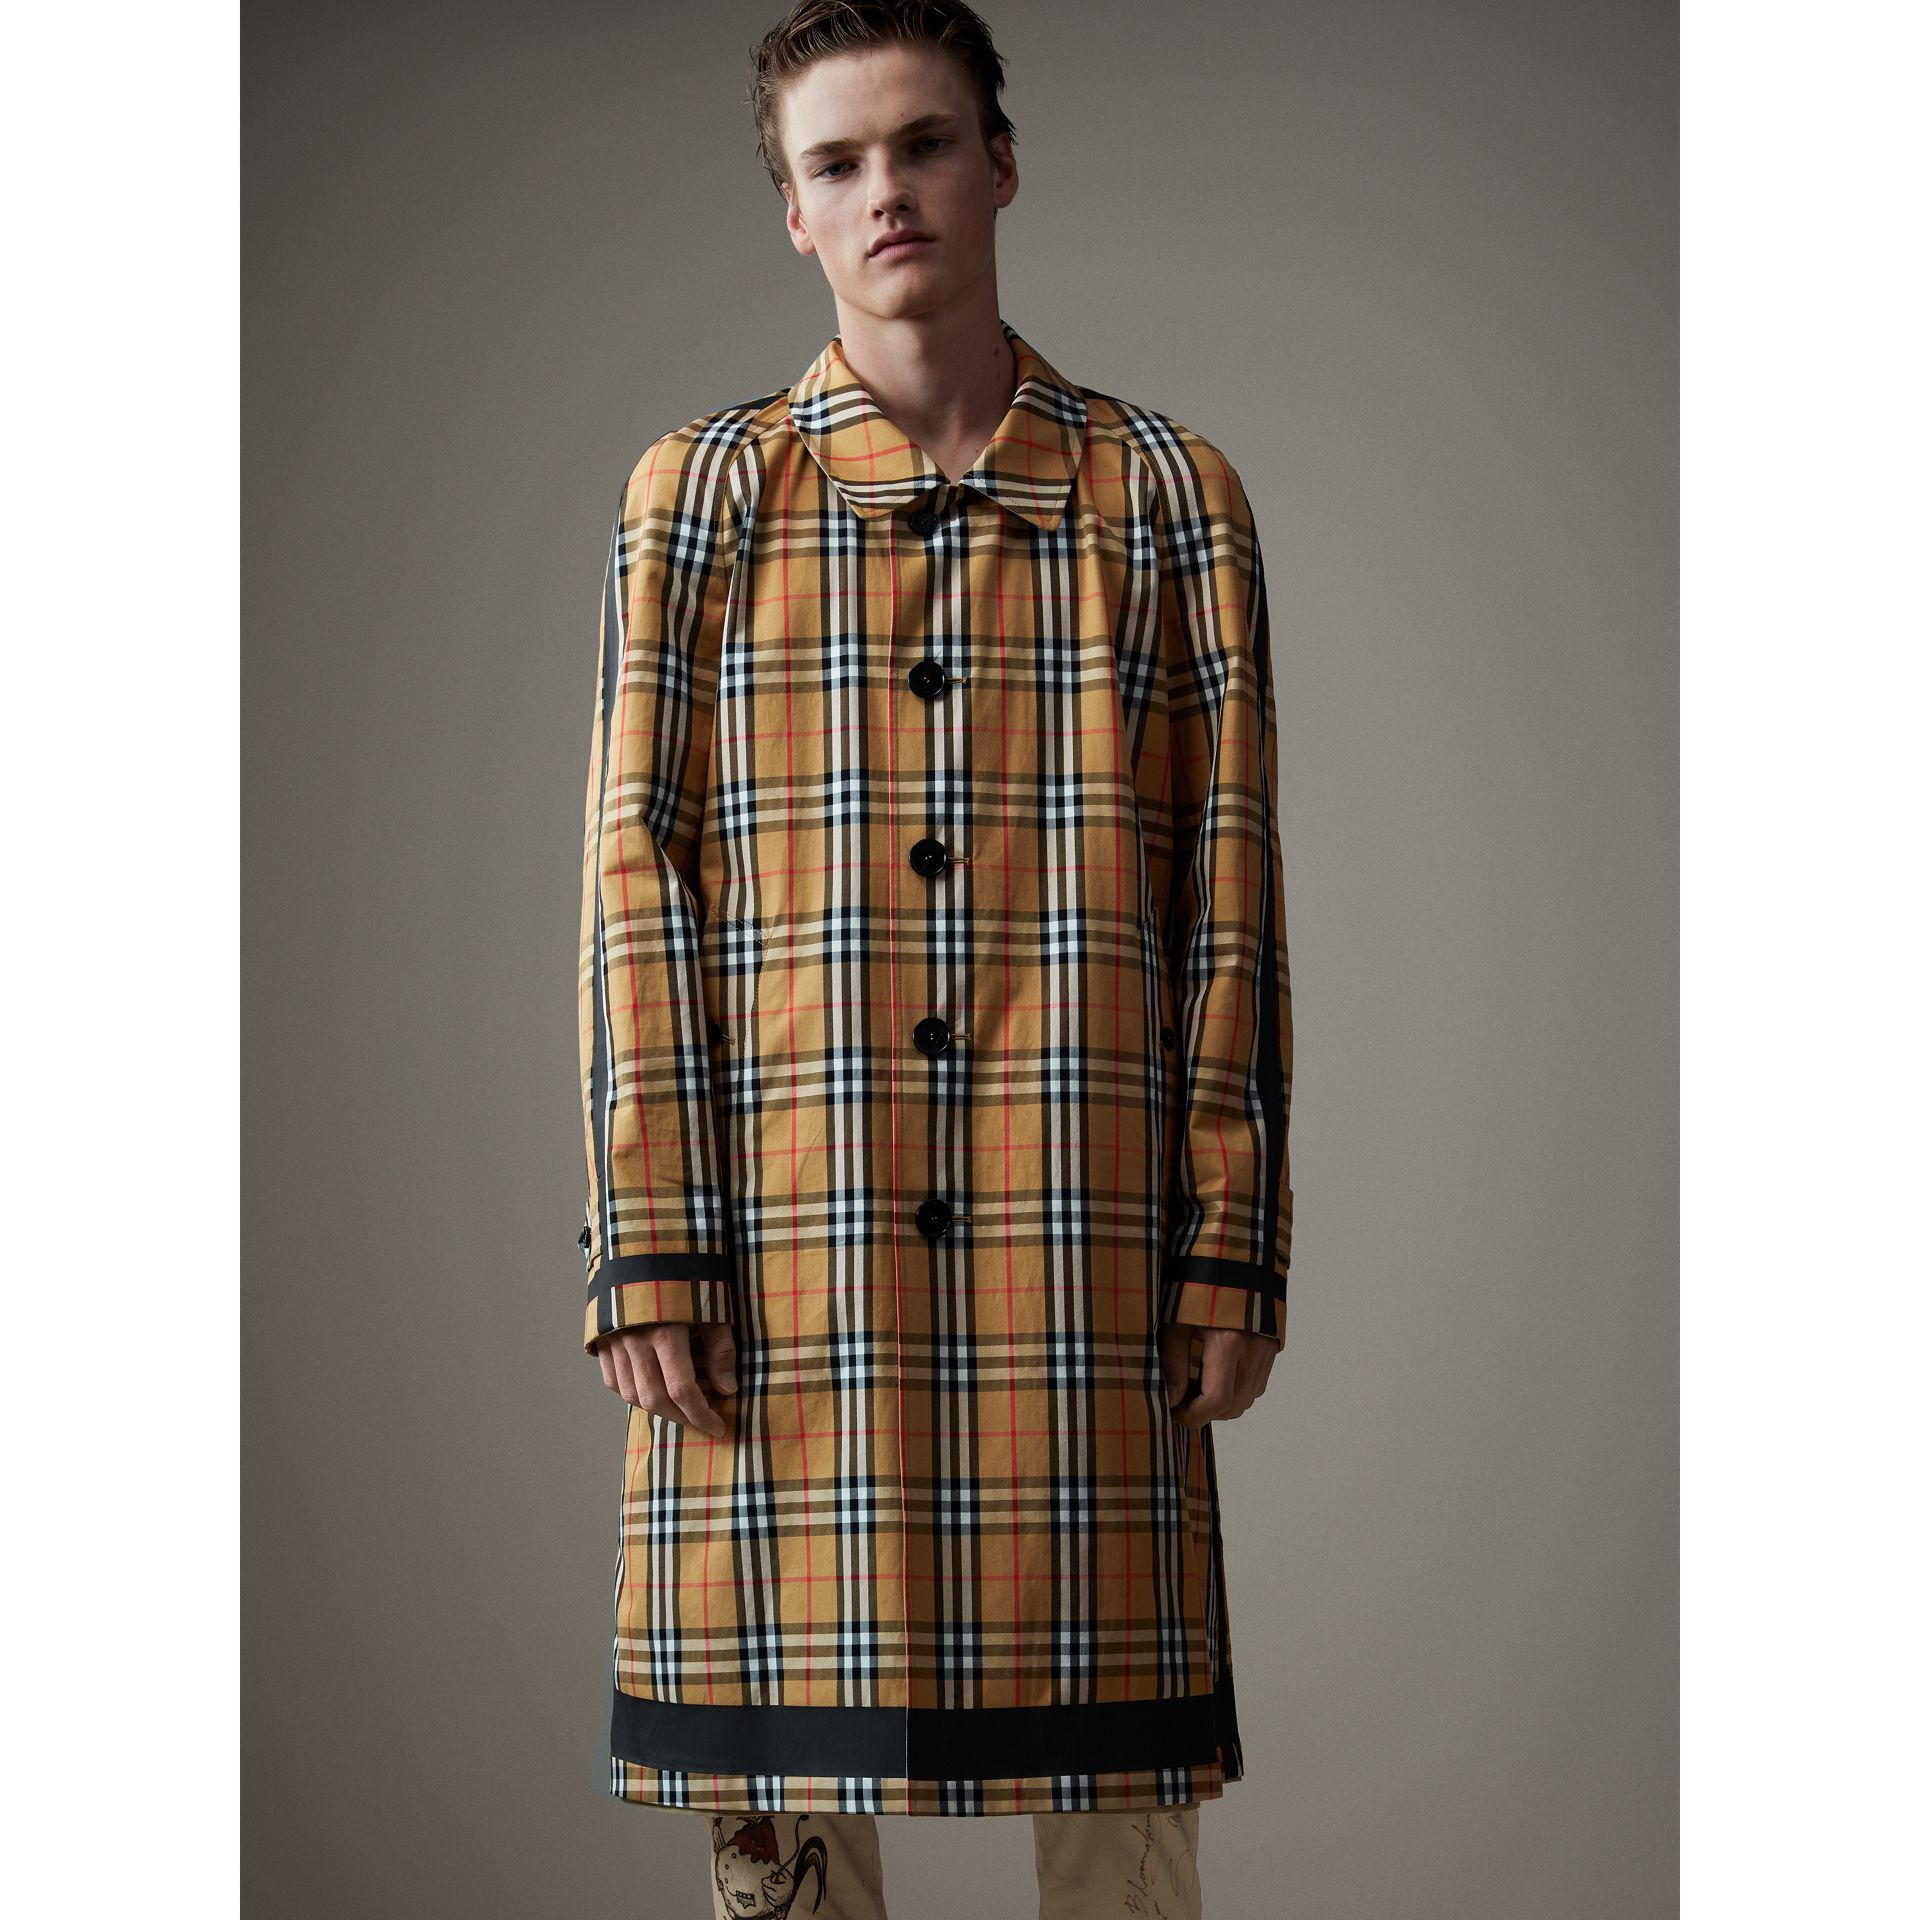 Paletot réversible en gabardine à motif Vintage check (Jaune Antique) - Homme | Burberry - photo de la galerie 7